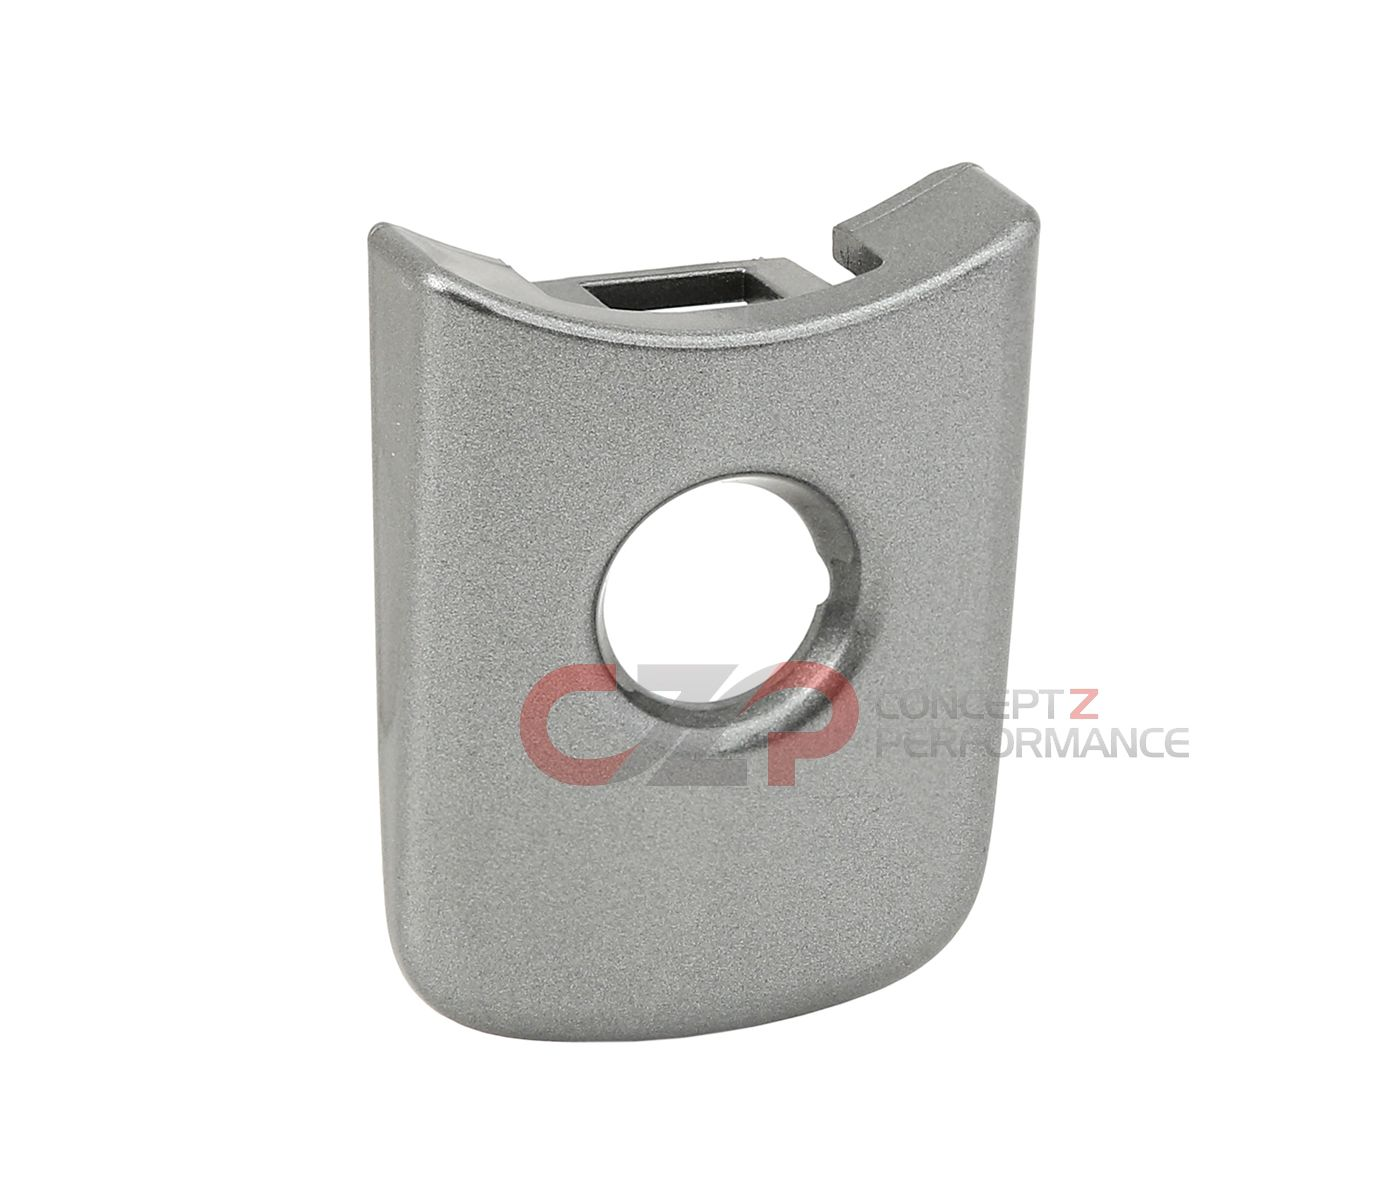 Infiniti OEM Door Lock Keyhole Finisher WV2 Diamond Graphite - Infiniti G35 03-07 G35 Coupe V35